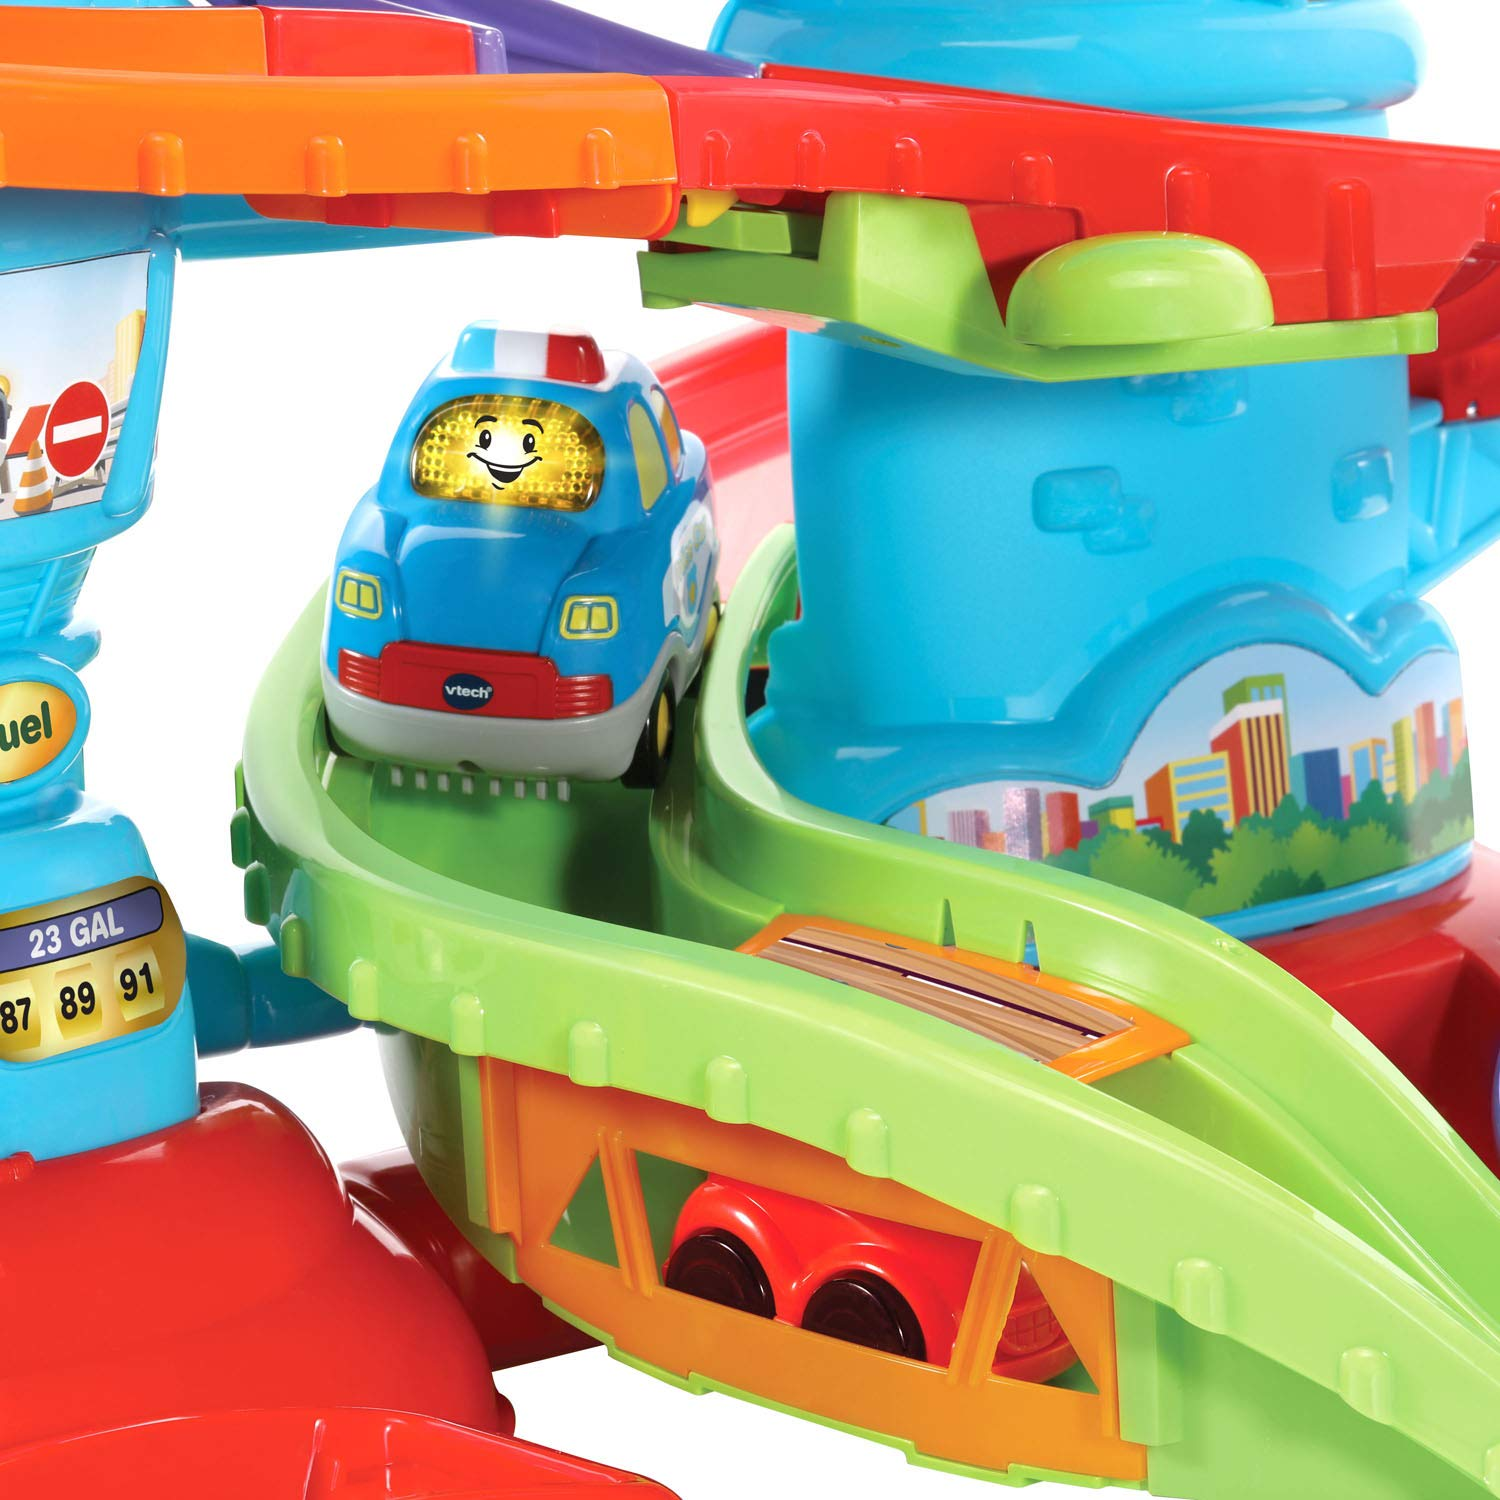 VTech Go! Go! Smart Wheels Launch and Chase Police Tower by VTech (Image #8)